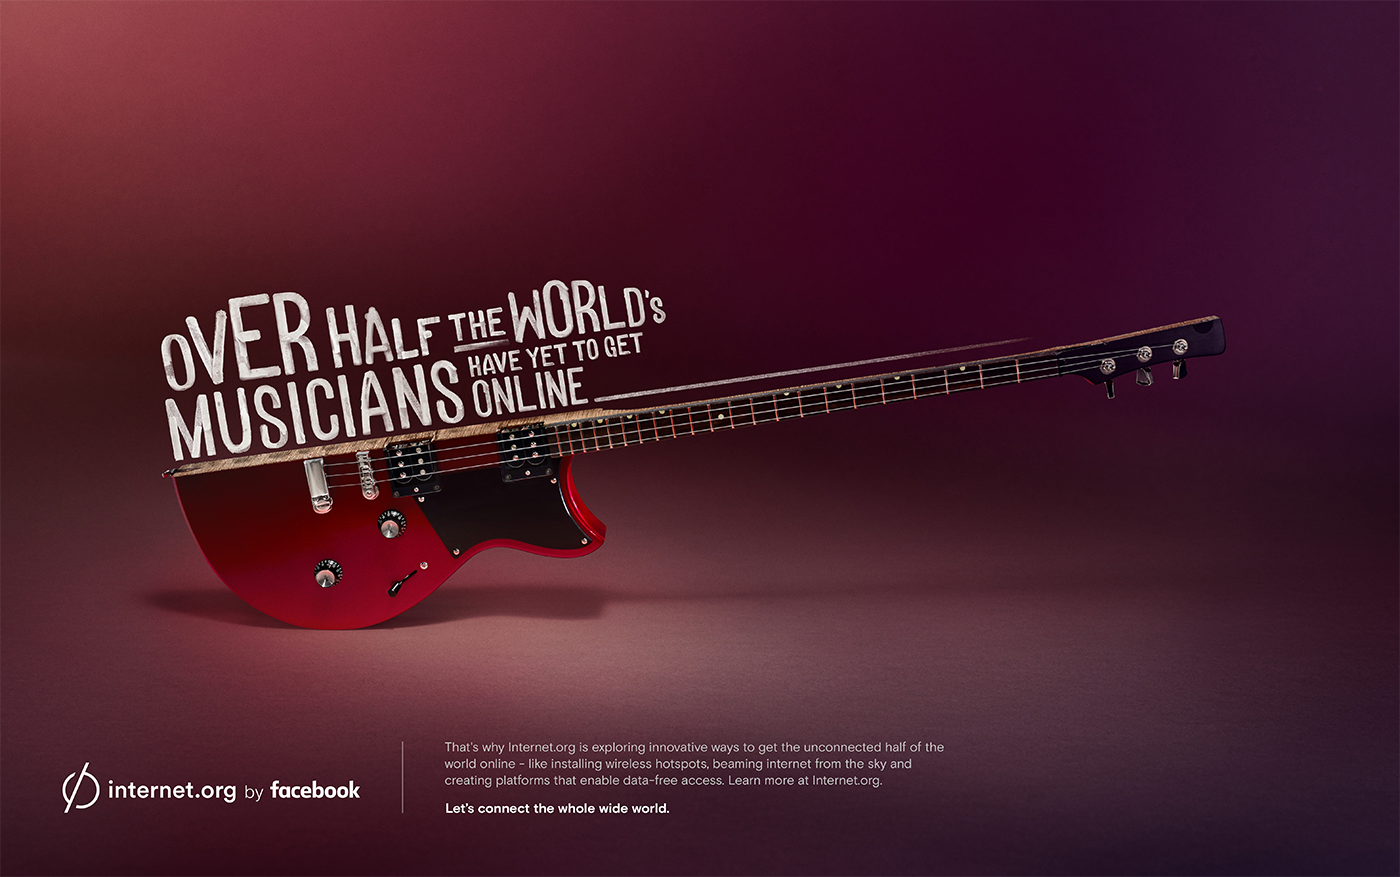 Digital Art and Advertising: Internet.org by Facebook